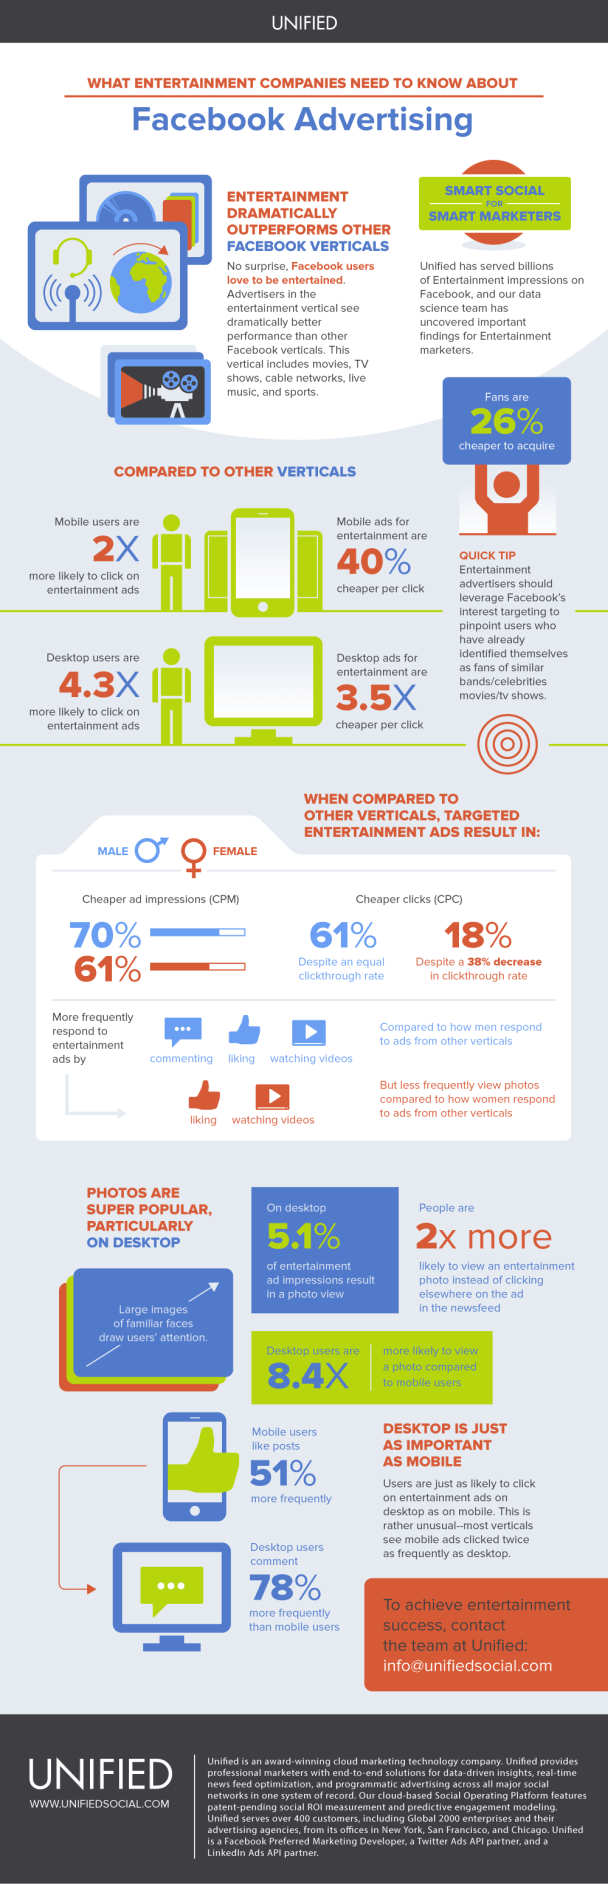 entertainment industry facebook advertising benchmarks What entertainment companies need to know about Facebook Advertising